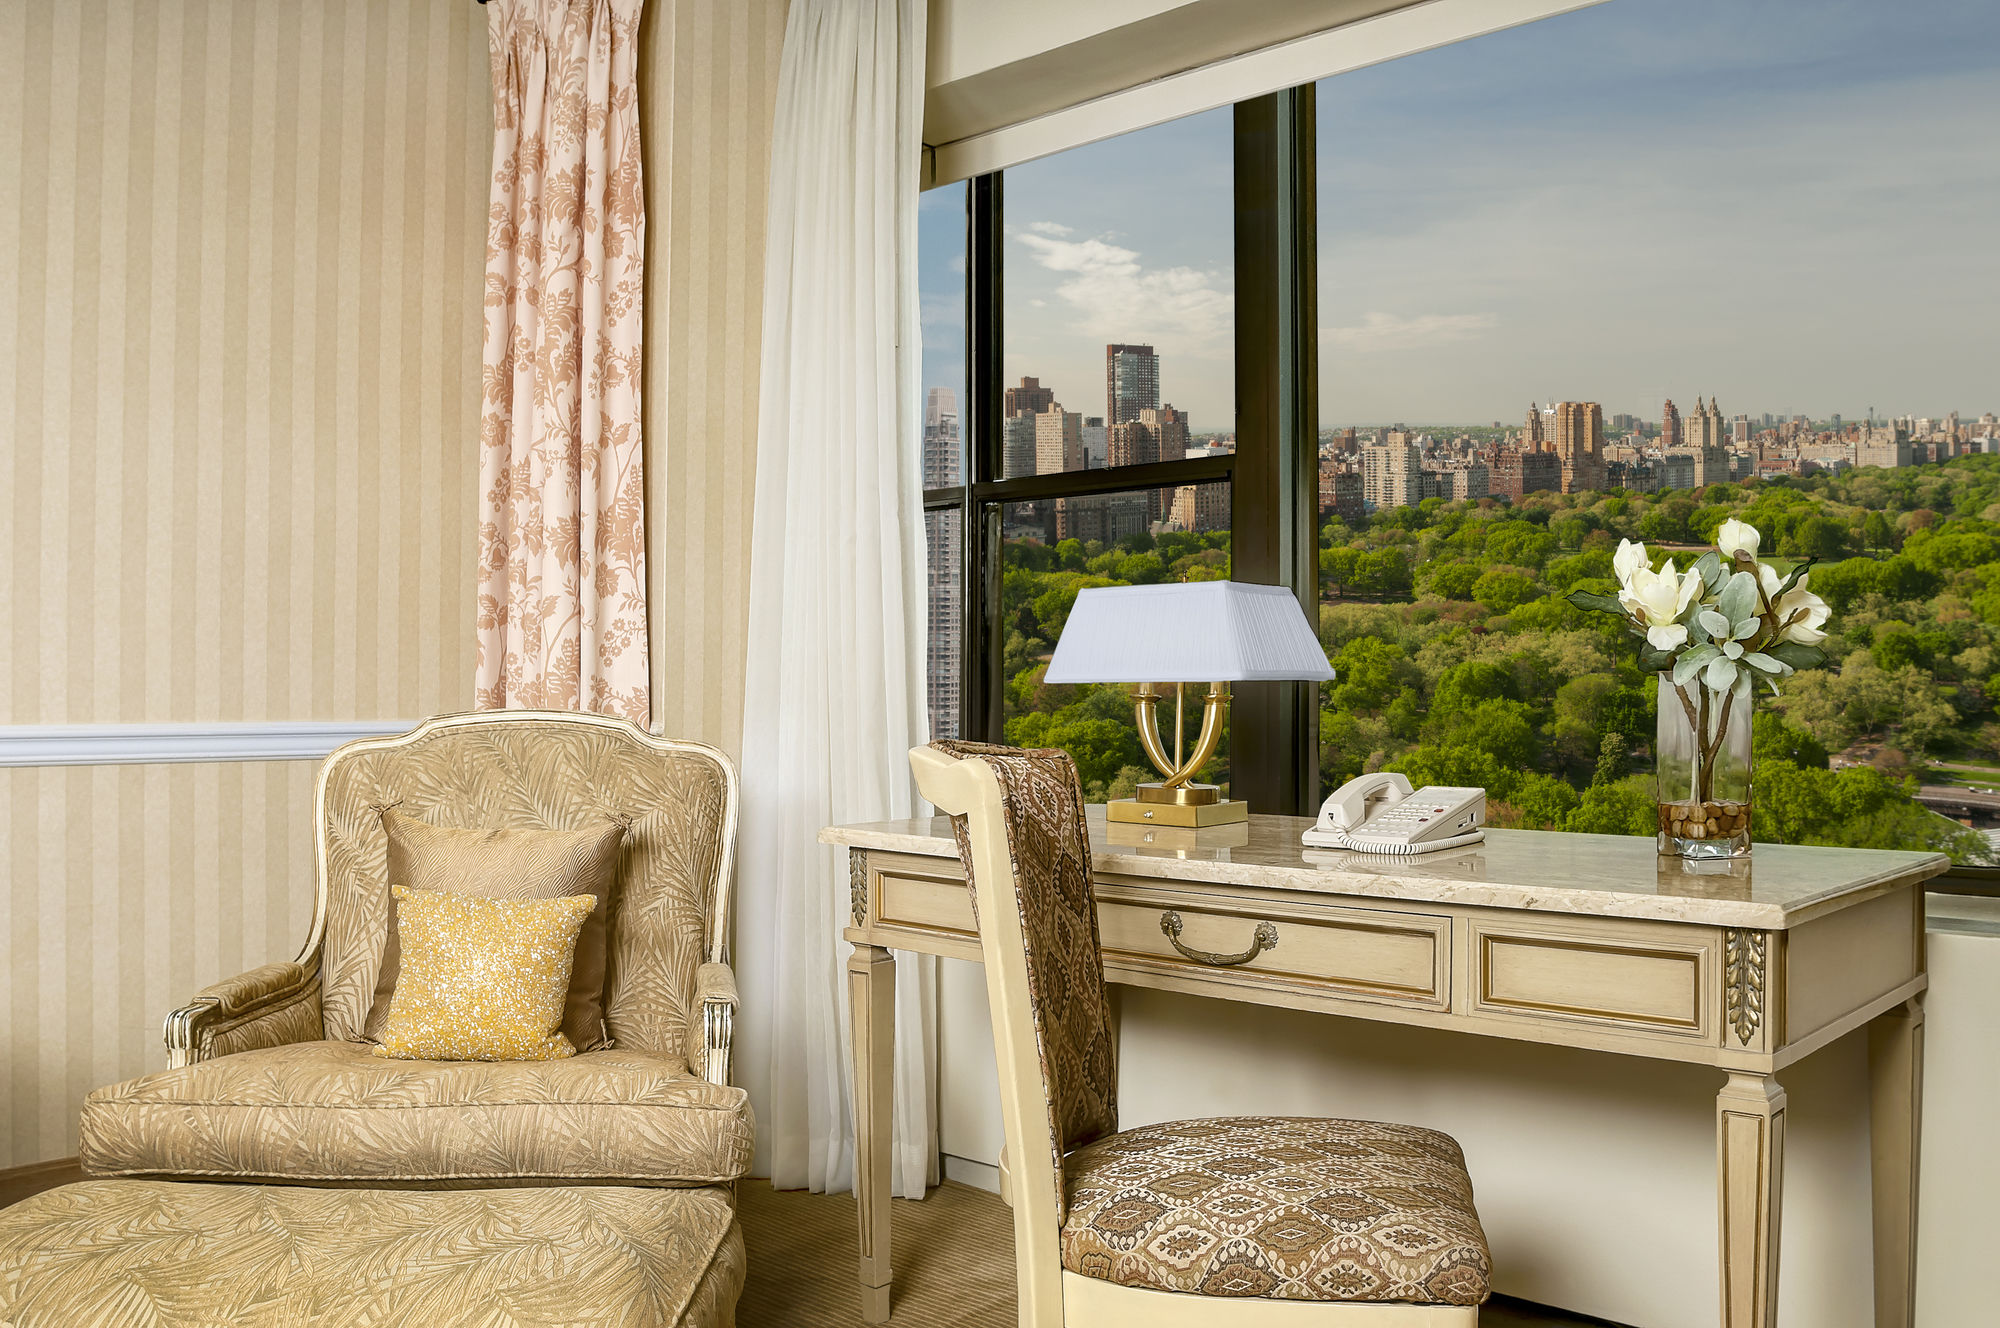 Lane Gramercy Park Bedroom Furniture New York Hotel Coupons For New York New York Freehotelcouponscom